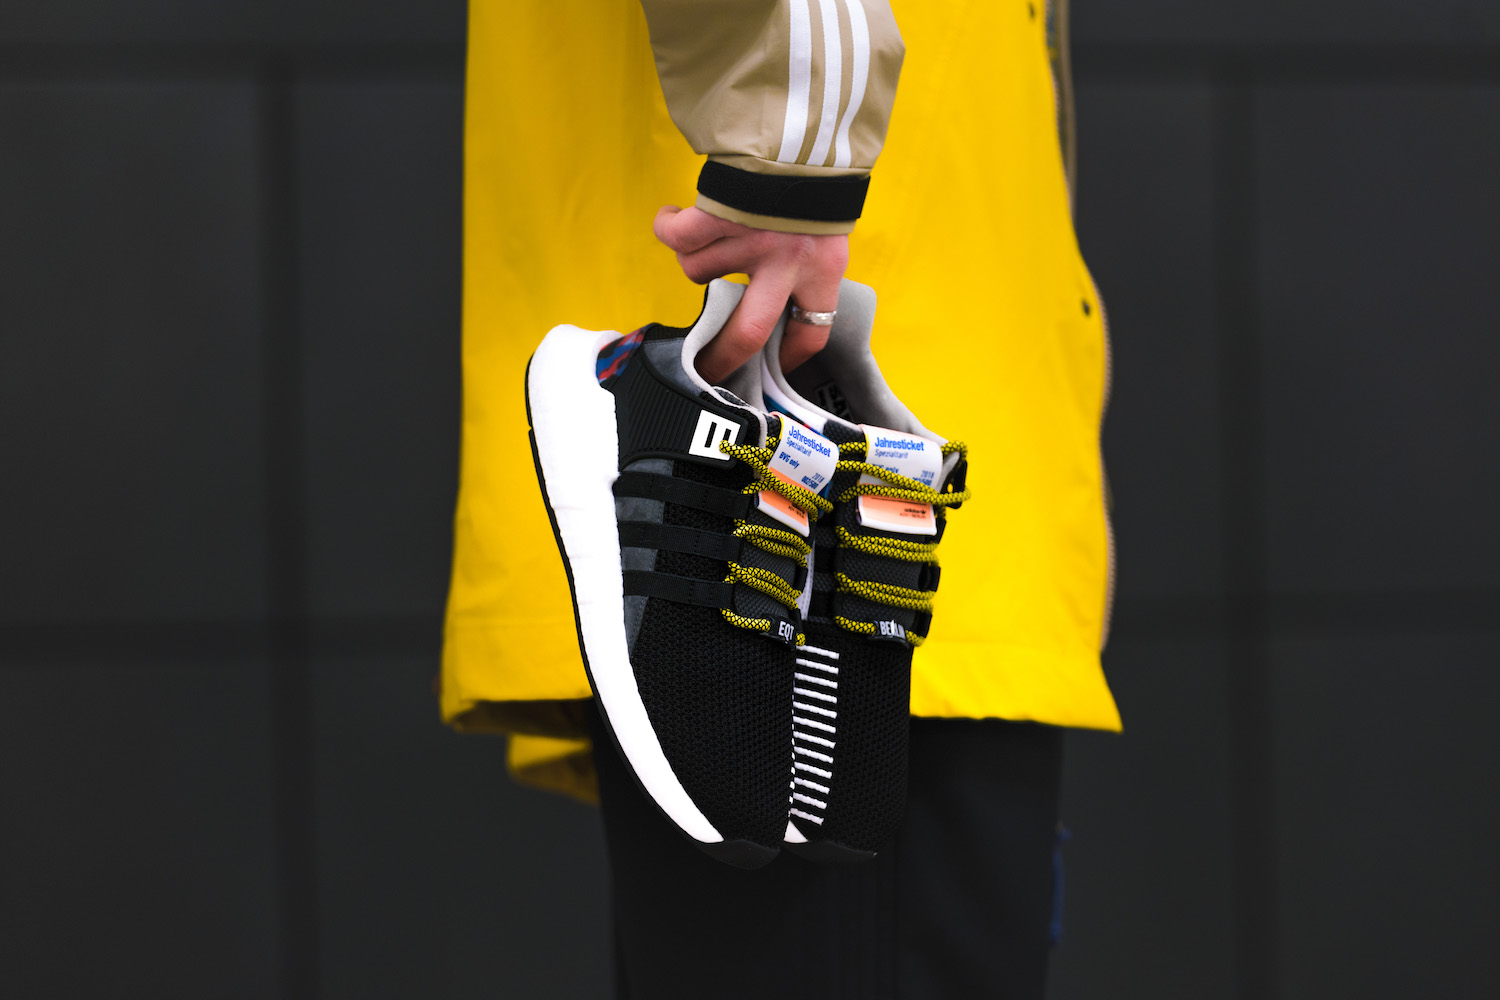 This adidas Sneaker Is A Yearly Pass to Berlin's Public